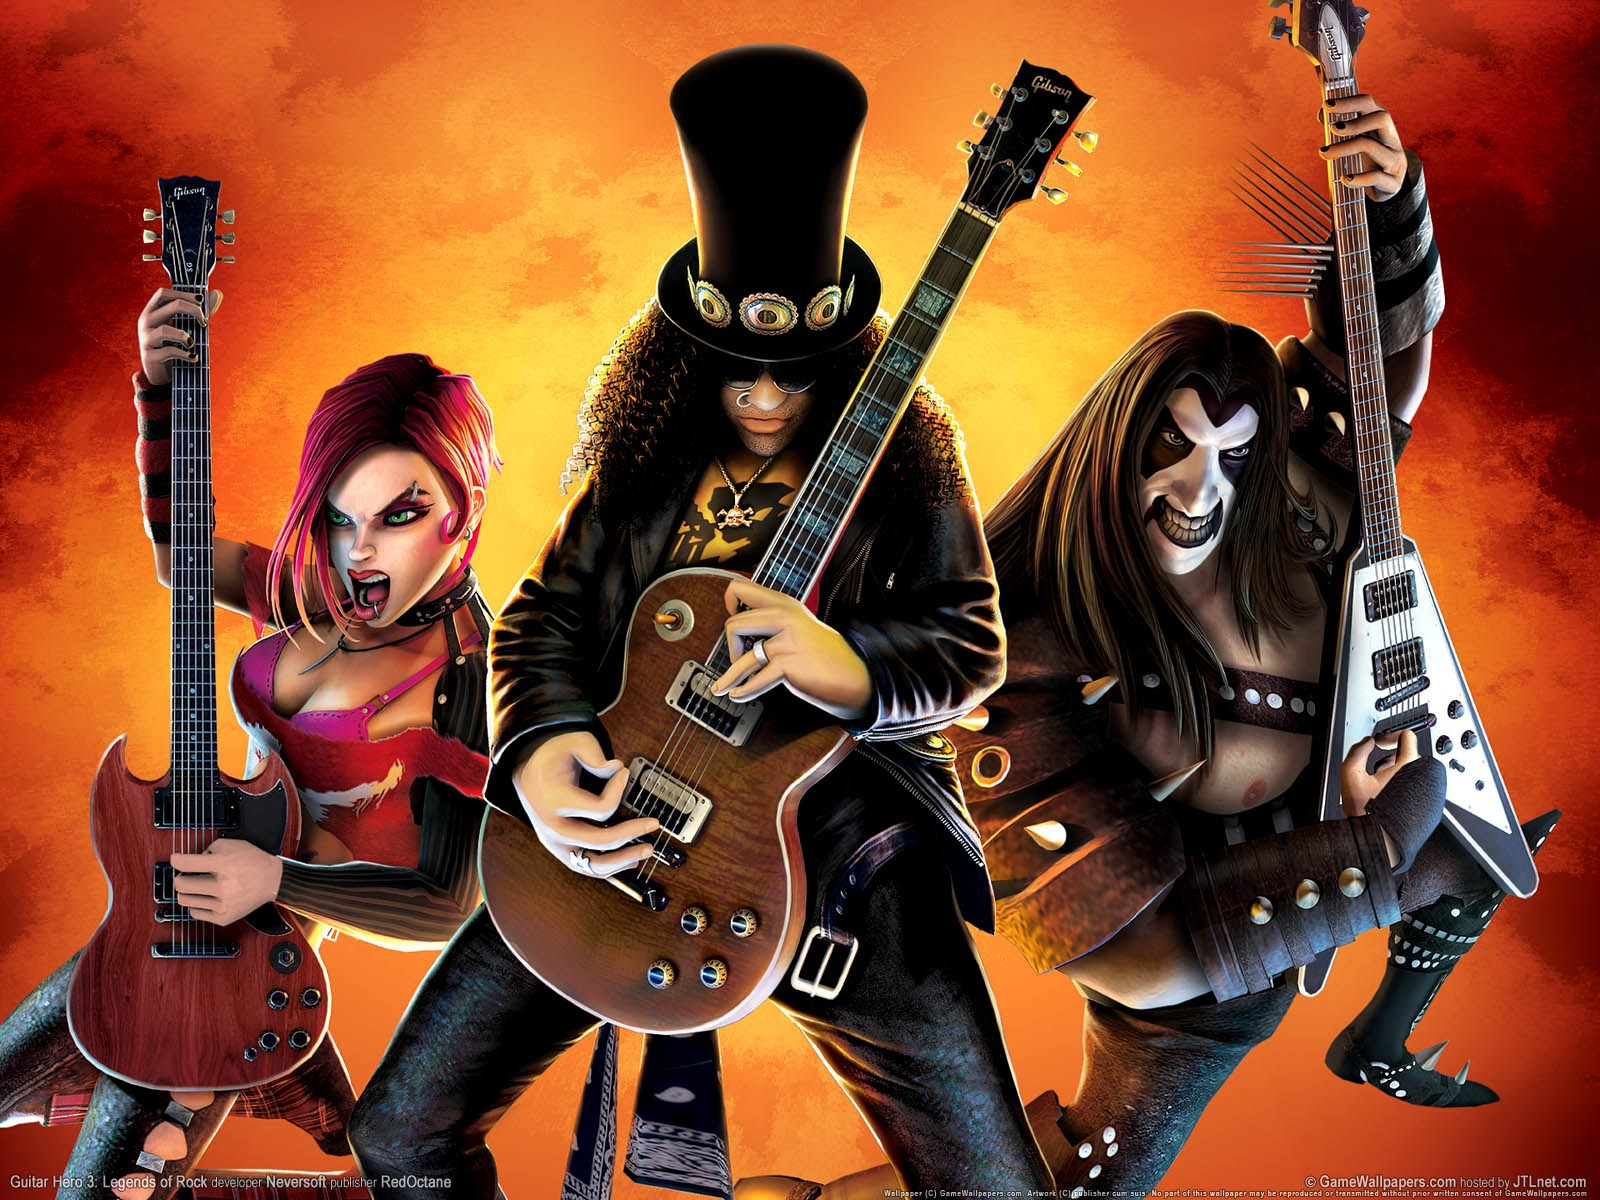 State of Play--The Gaming Blog: Guitar Hero's Death Spiral